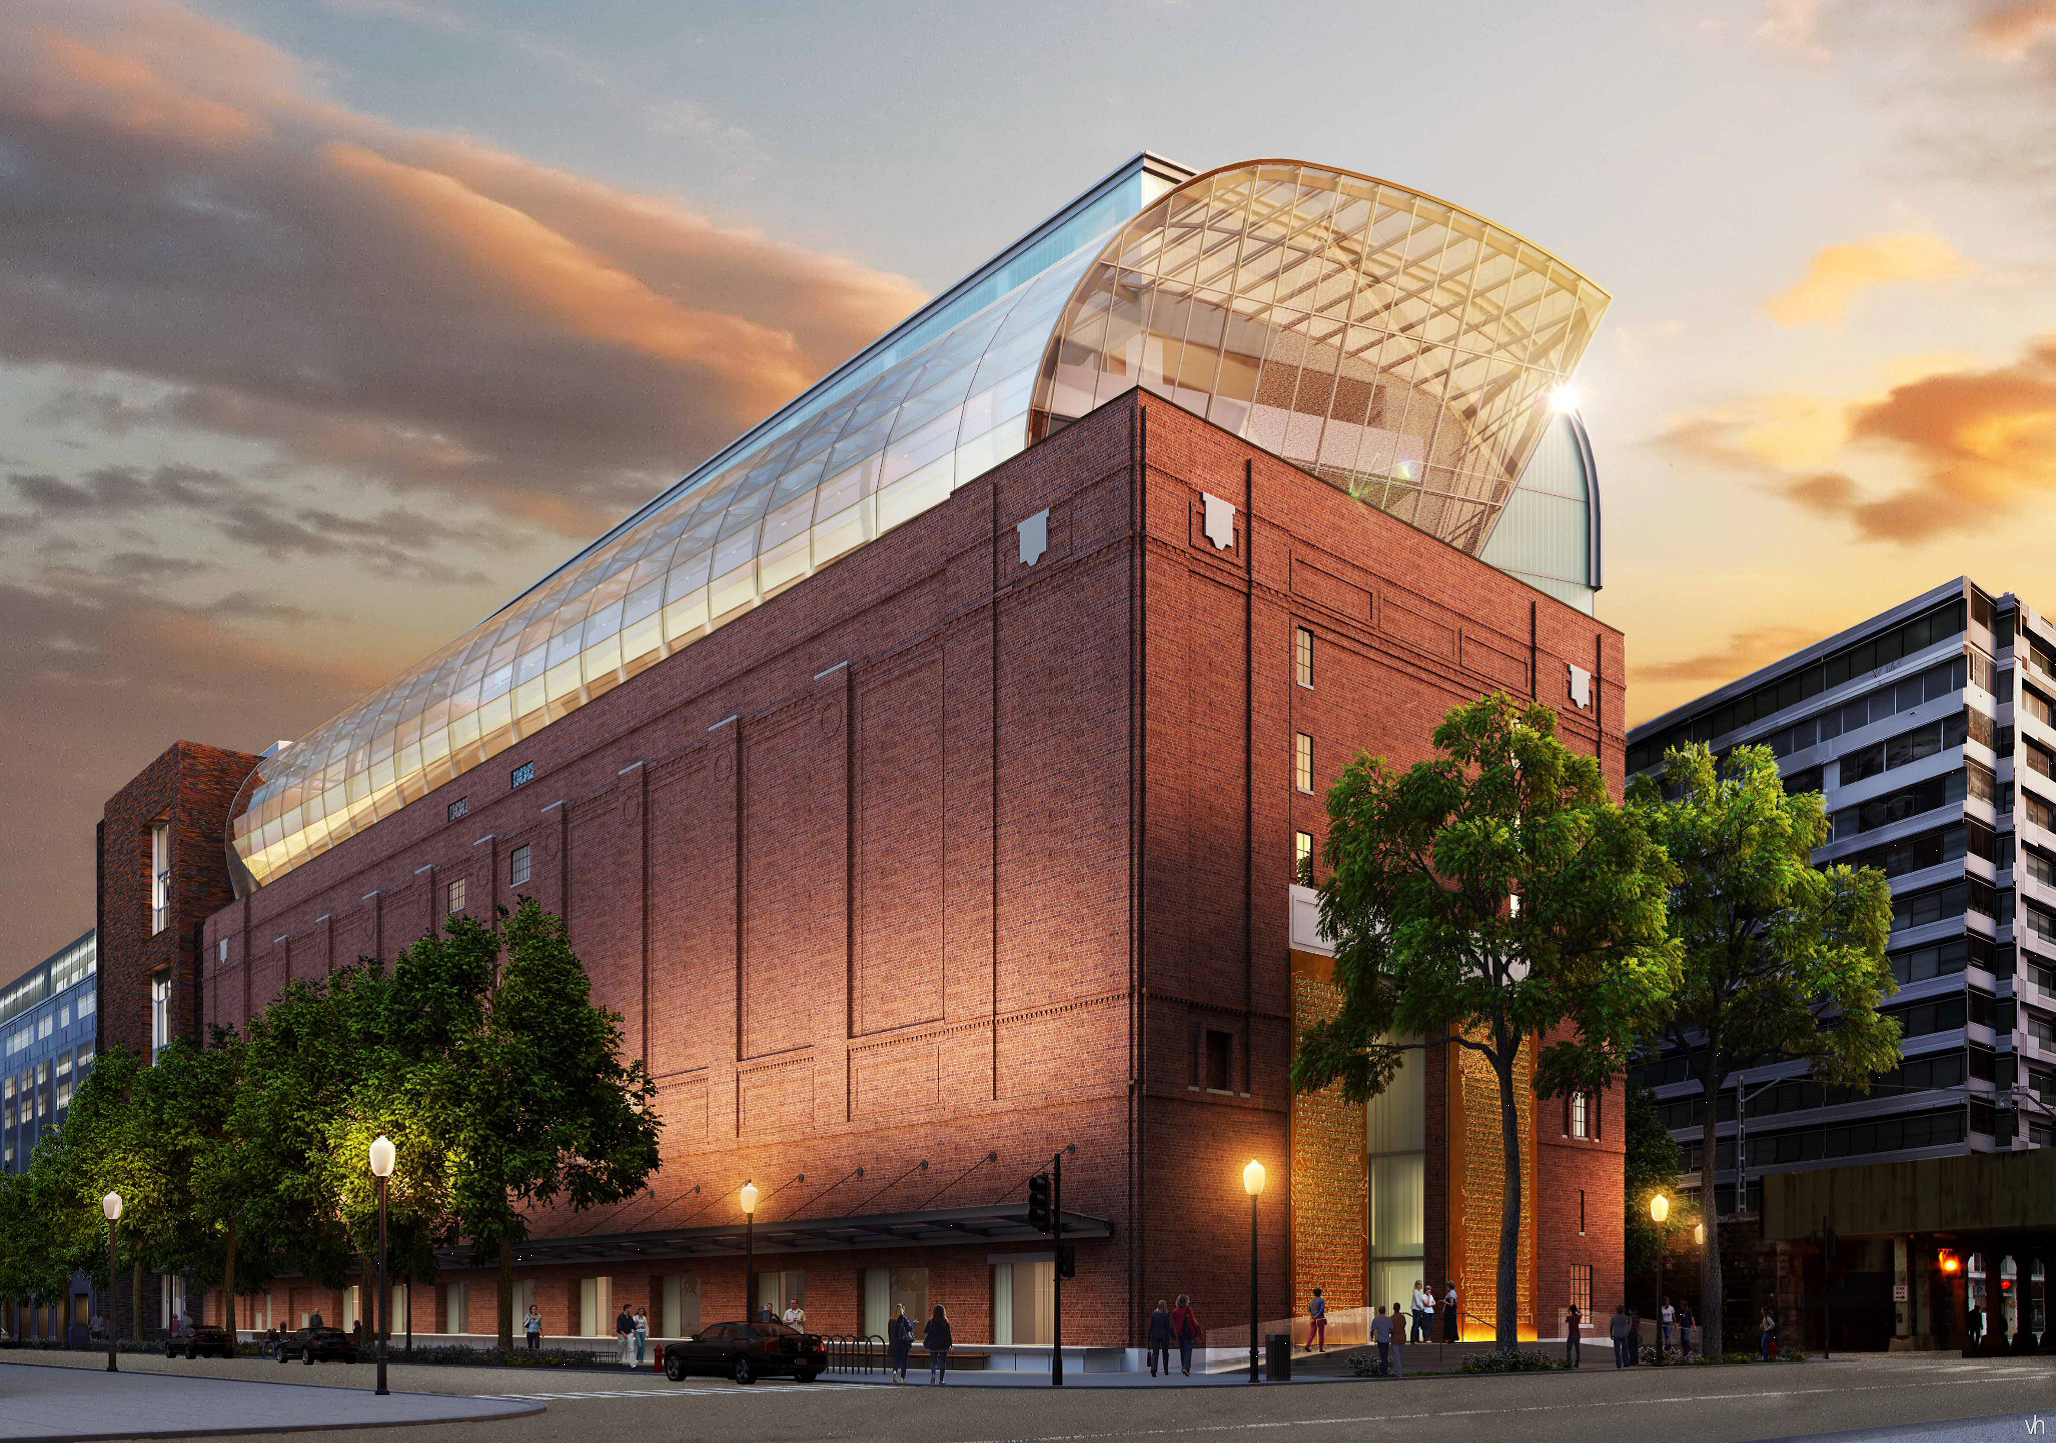 Exterior rendering of the eight-story, 430,000-square-foot Museum of the Bible. Opening in 2017, the museum is being designed by lead architect group SmithGroupJJR, whose portfolio includes the National Museum of African American History and Culture, International Spy Museum and the Smithsonian's National Museum of the American Indian. (Photo credit: SmithGroupJJR)